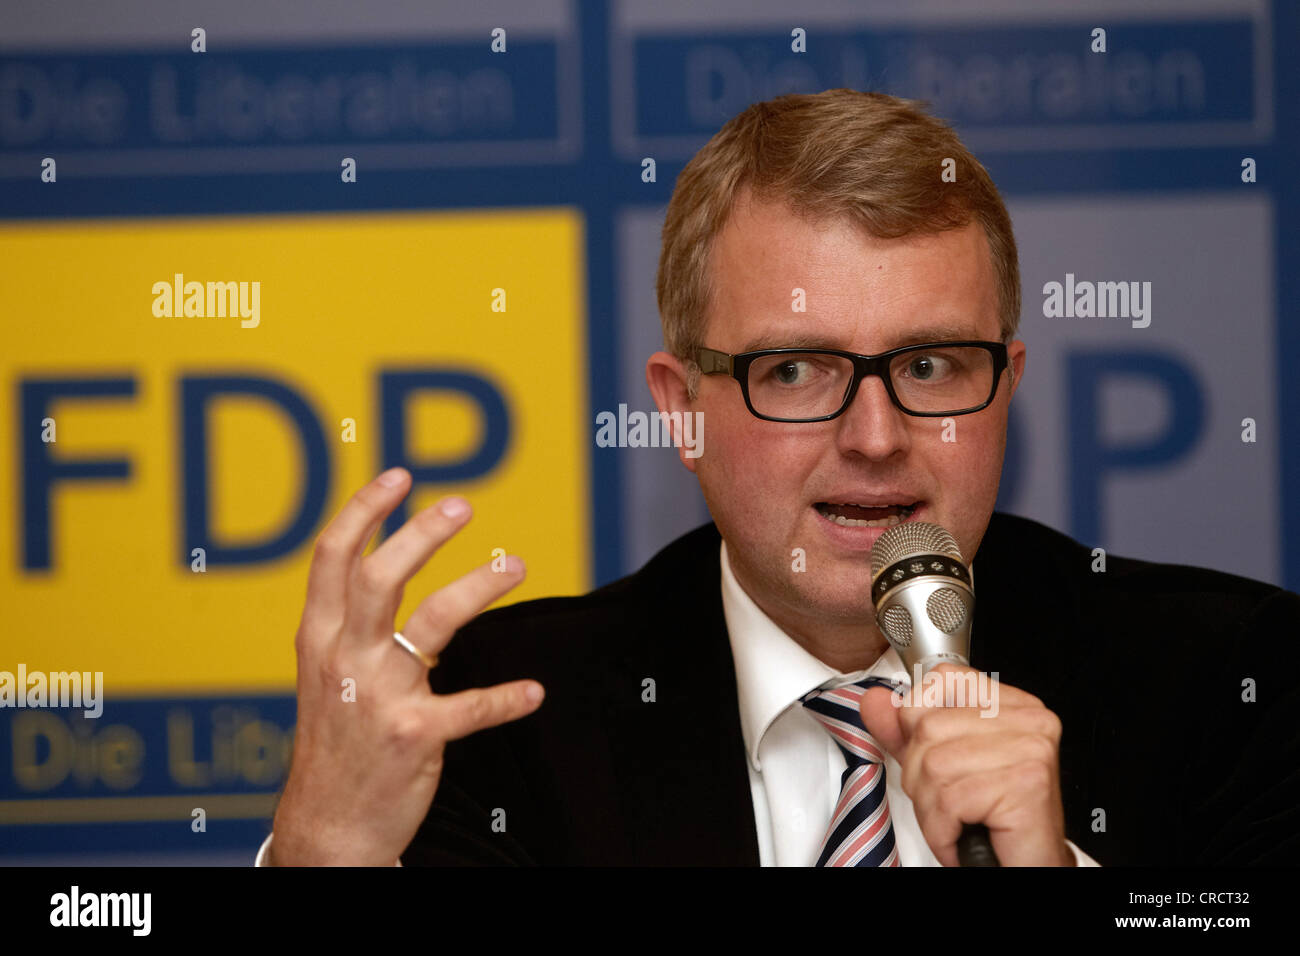 Euro-critic Frank Schaeffler, member of Parliament for FDP, Free Democratic Party, at a discussion meeting, Plaidt - Stock Image